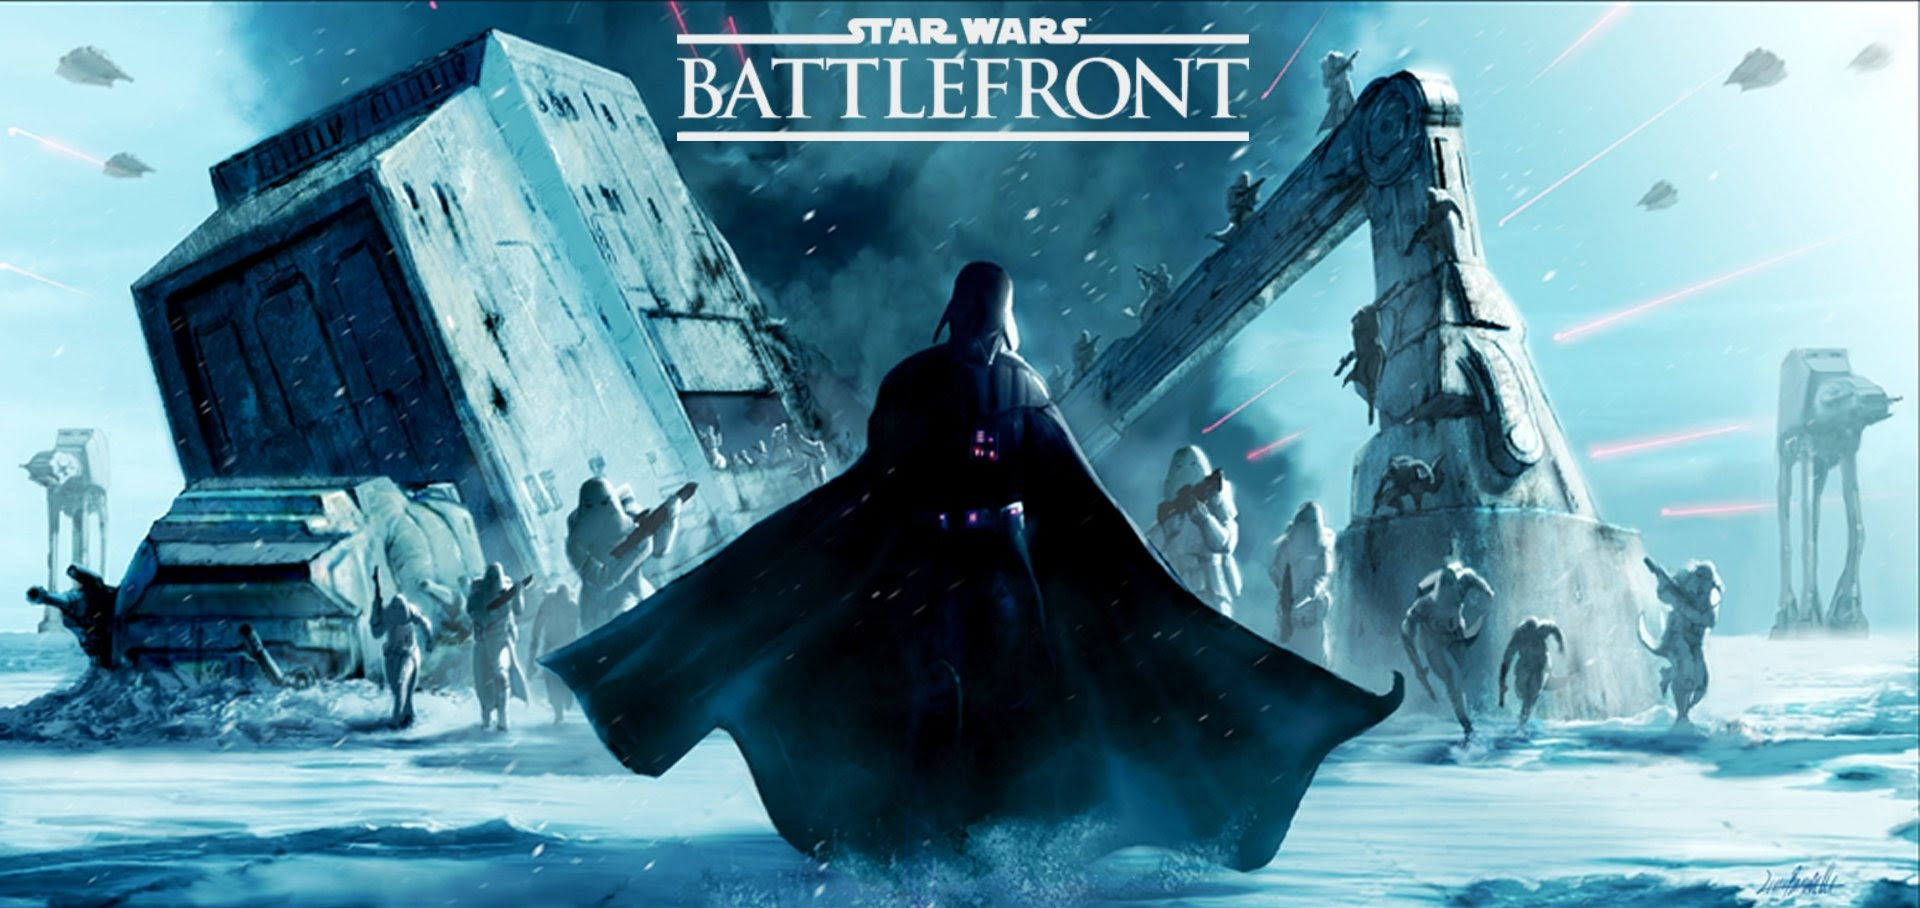 http://ps4pro.eu/wp-content/uploads/2015/04/star-wars-battlefront.jpg